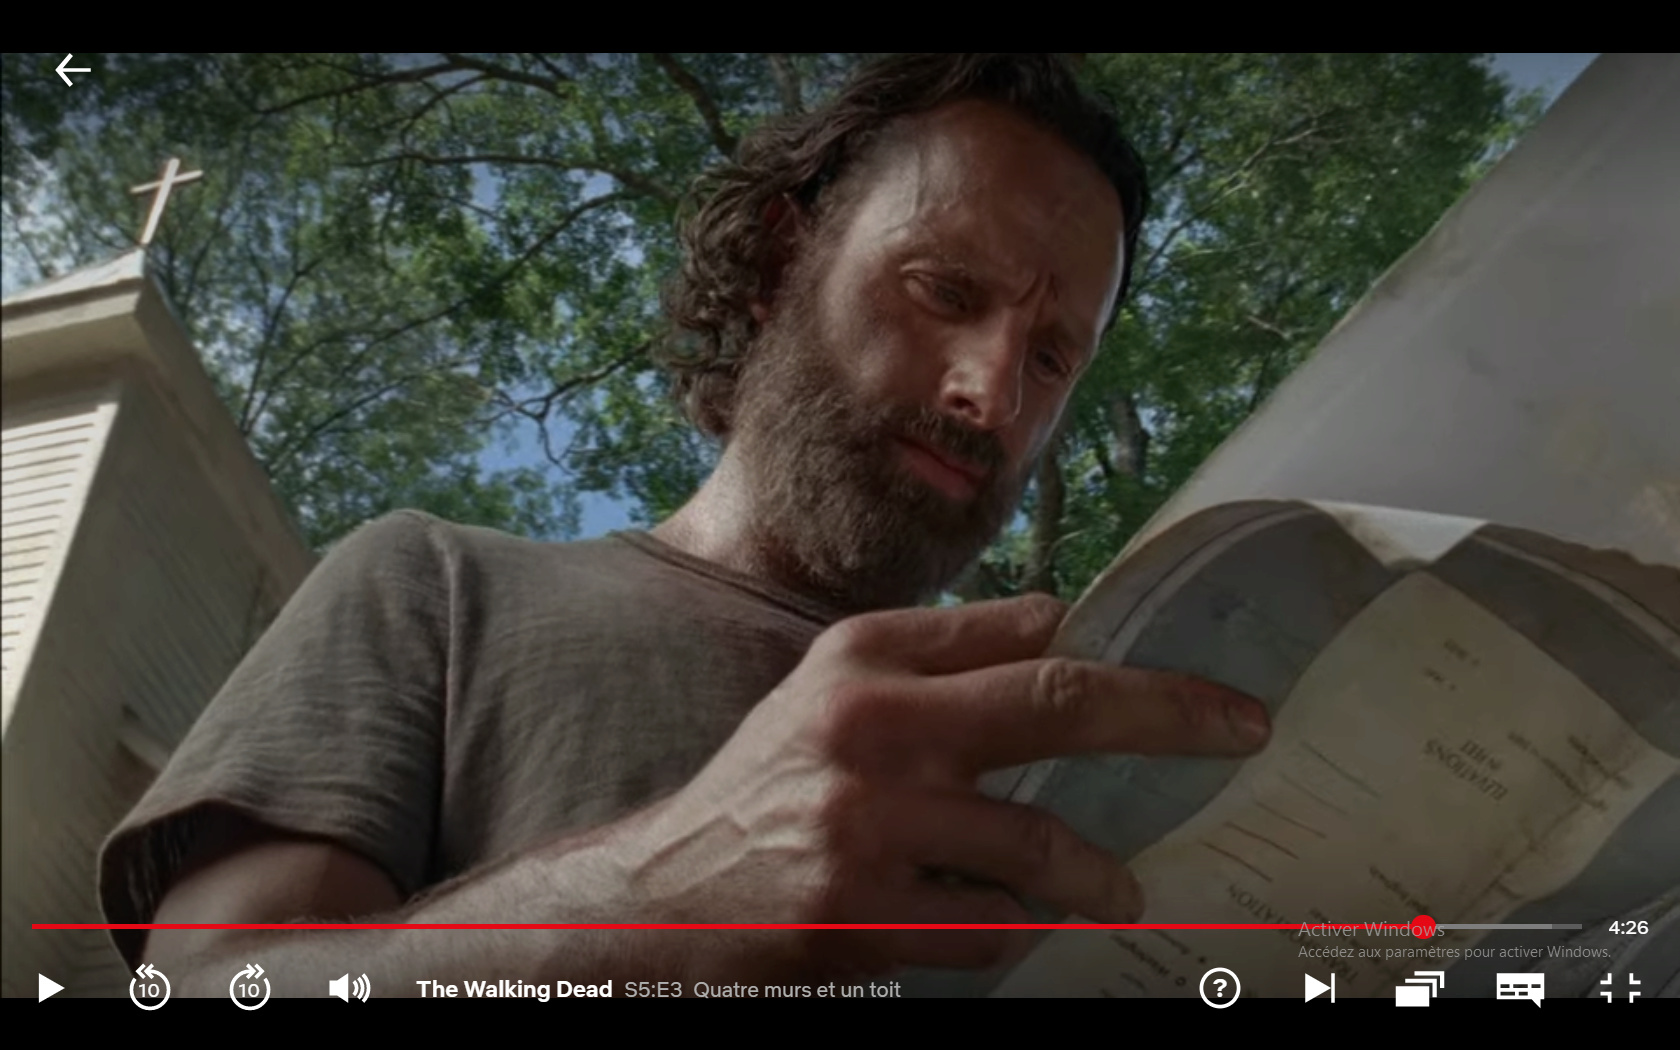 The Walking dead, storybording with Google Earth and Street View - Page 6 Captur14